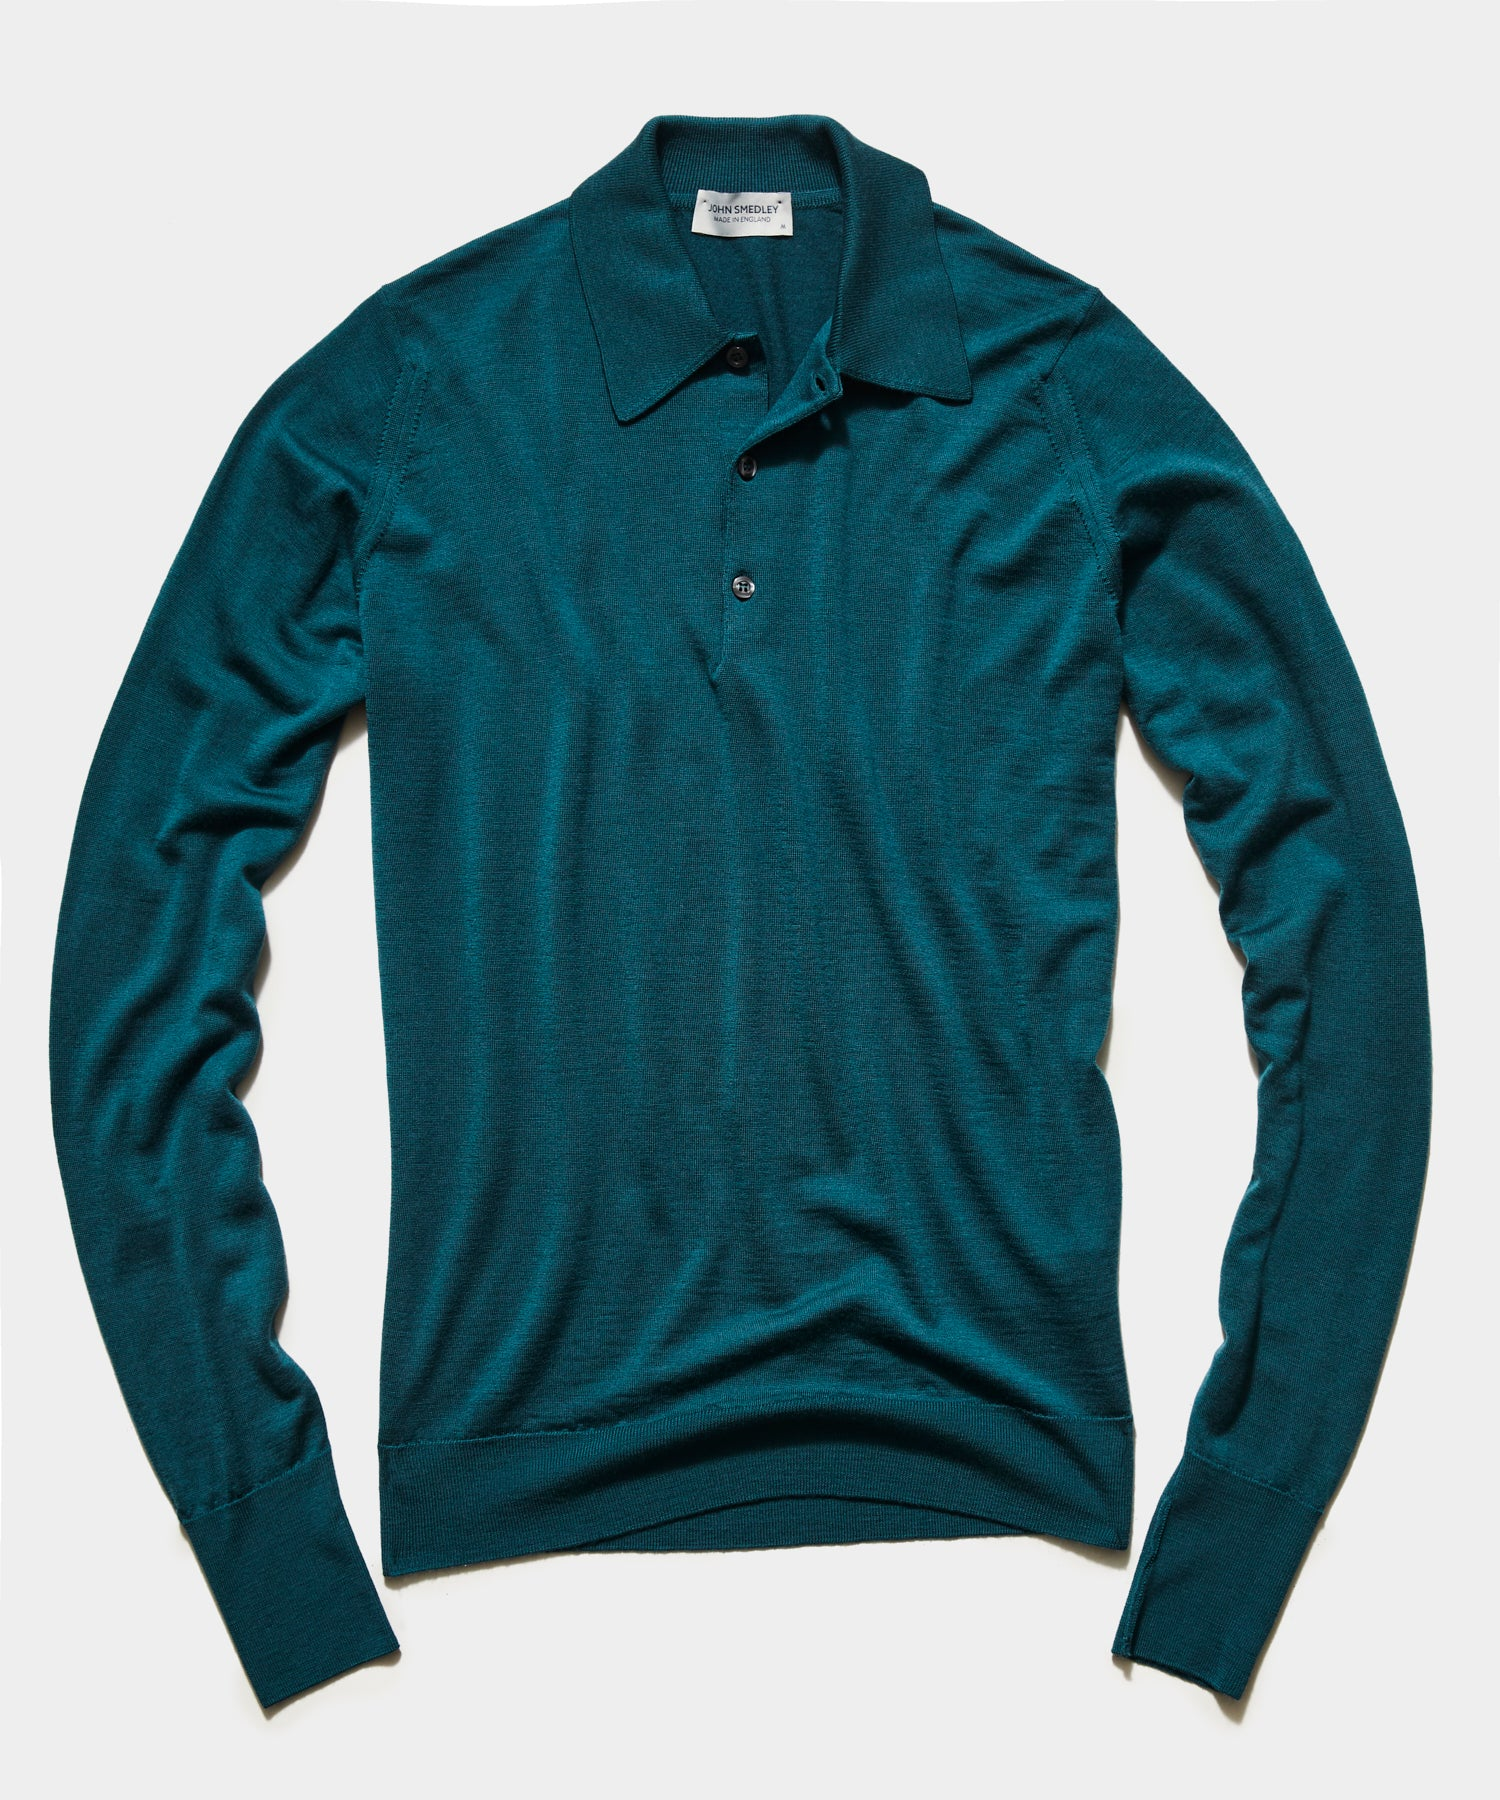 John Smedley Easy Fit Long Sleeve Polo Sweater in Emerald